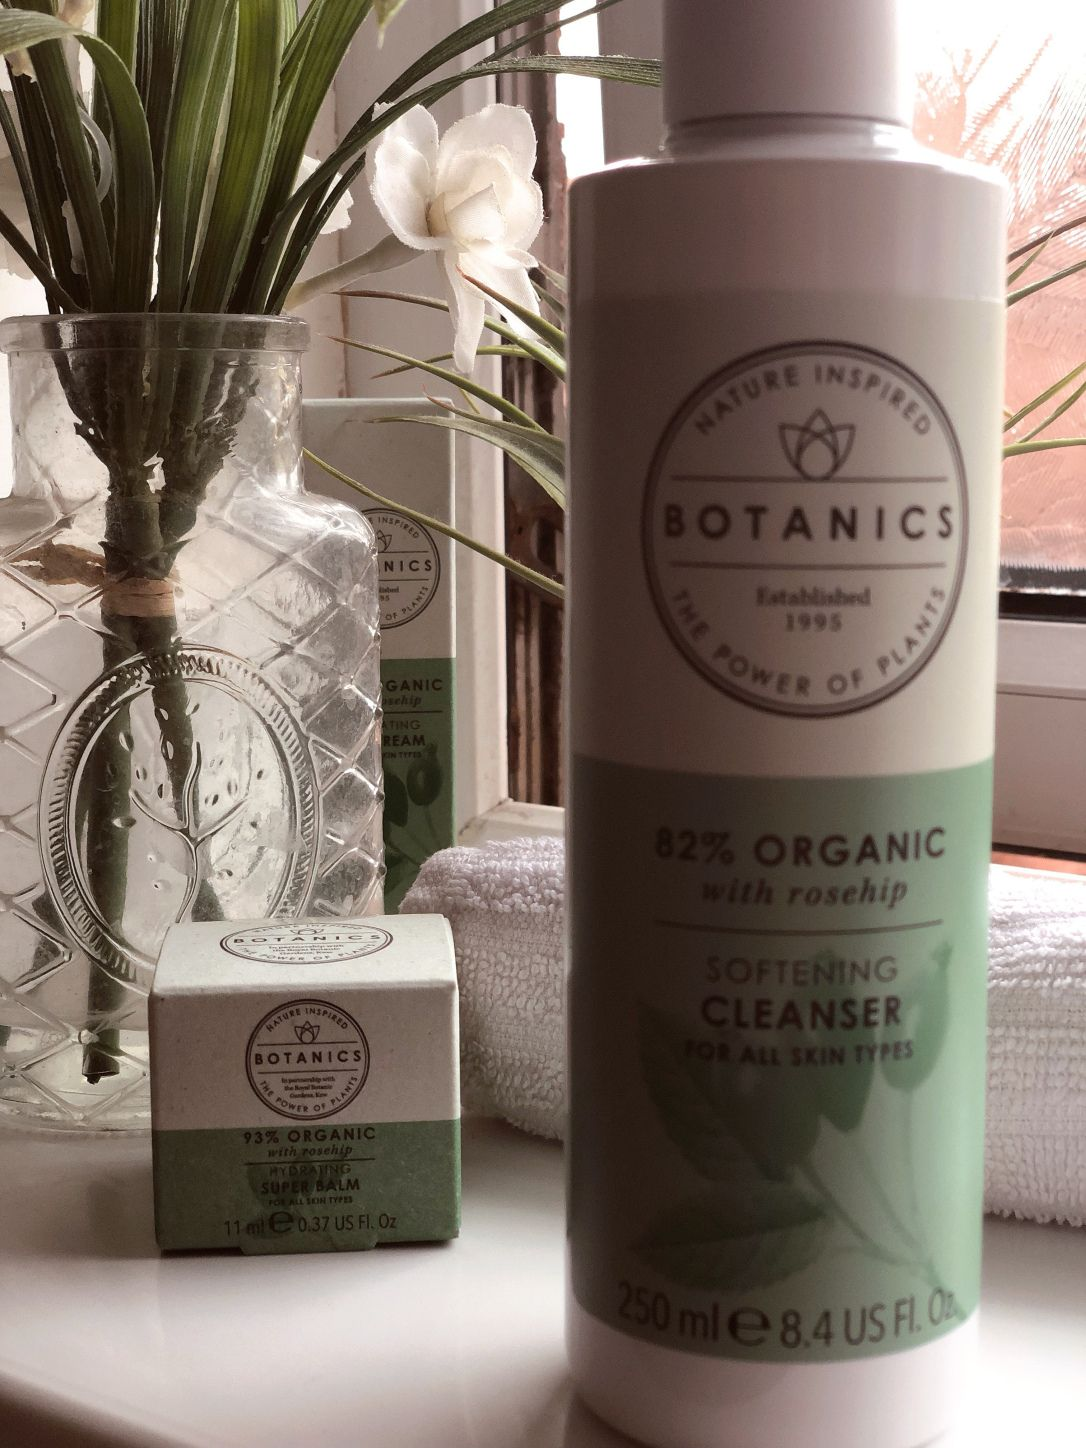 Organic September Boots Botanics Organic Affordable